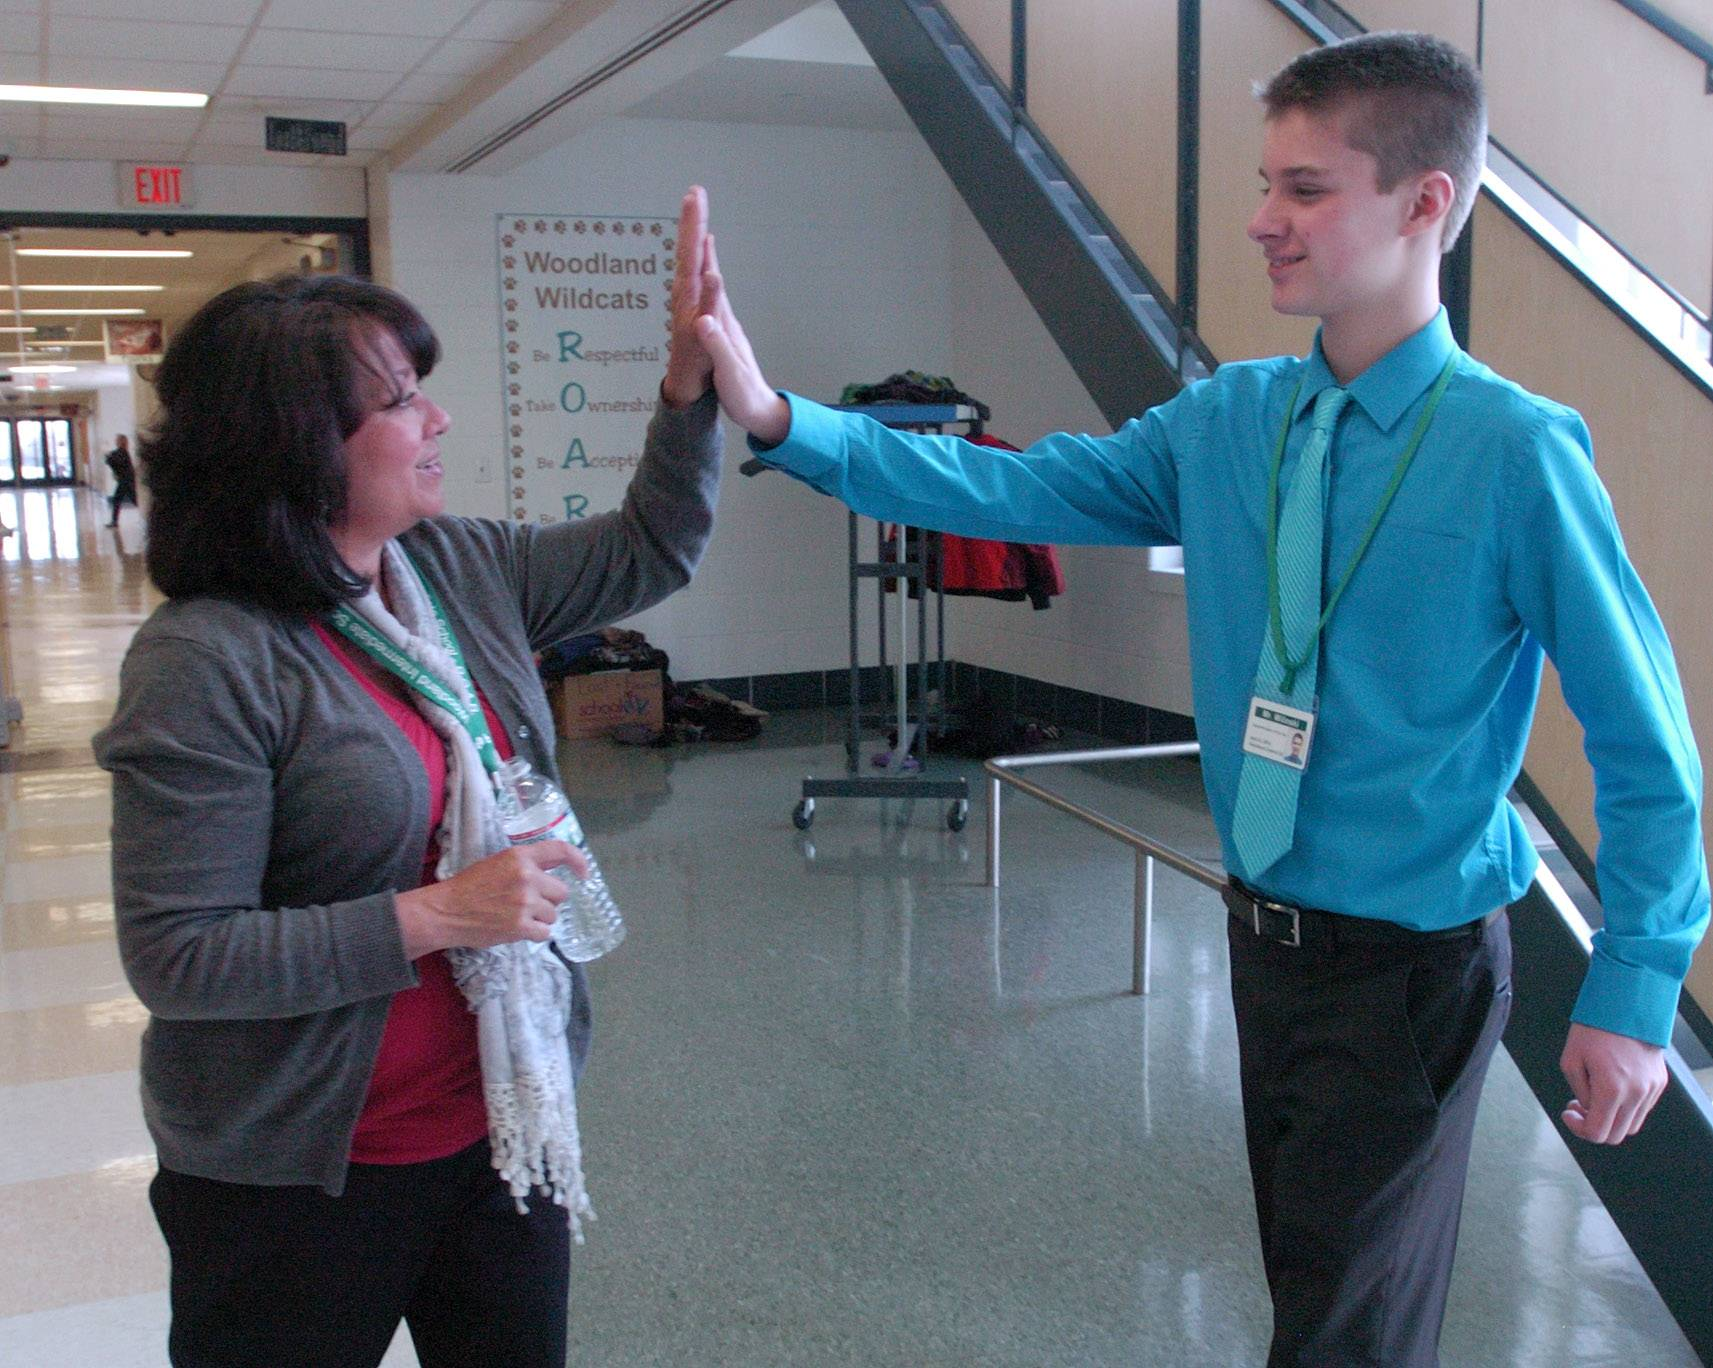 Woodland Intermediate School teacher Linda McCarthy high-fives Woodland Middle School seventh-grader Bradley Wilinski, who spent Tuesday as Superintendent for a Day. McCarthy was Wilinski's former art teacher in Gurnee-based Woodland Elementary District 50.